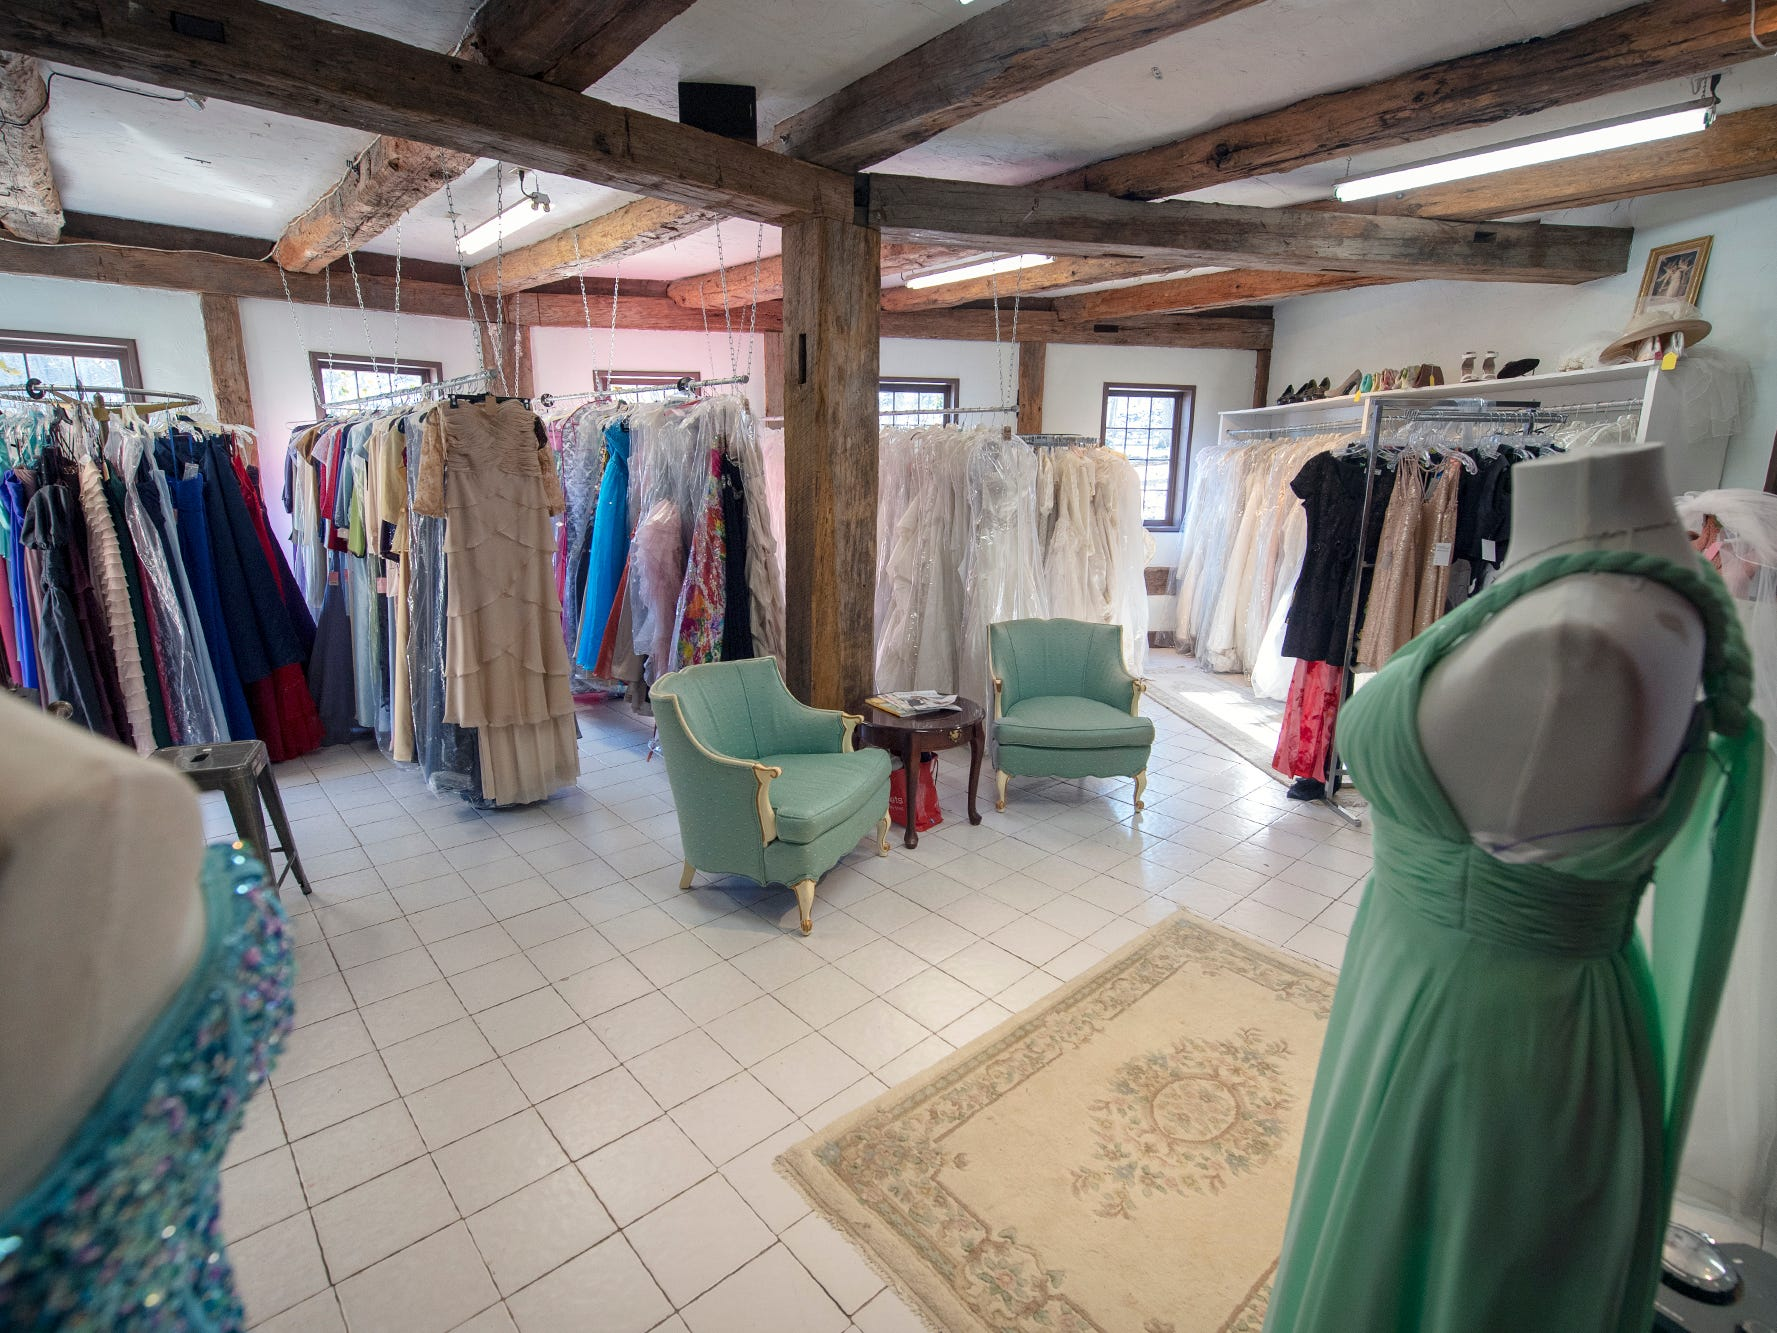 The bridal dress shop. Notable wedding and event venue, the historic Stone Mill 1792 in York County, is for sale.